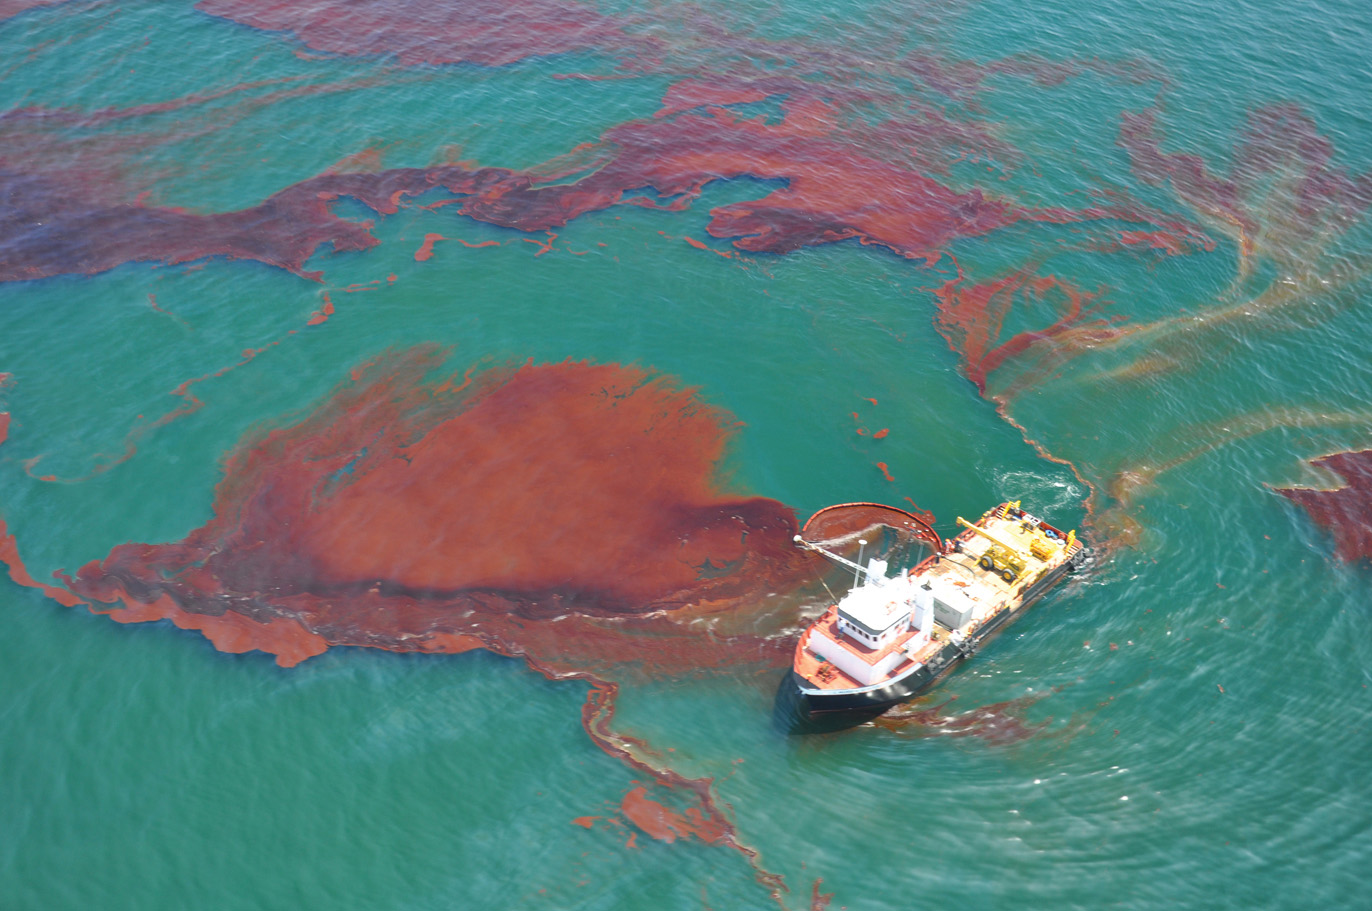 Ship using a skimmer to collect spilled oil.